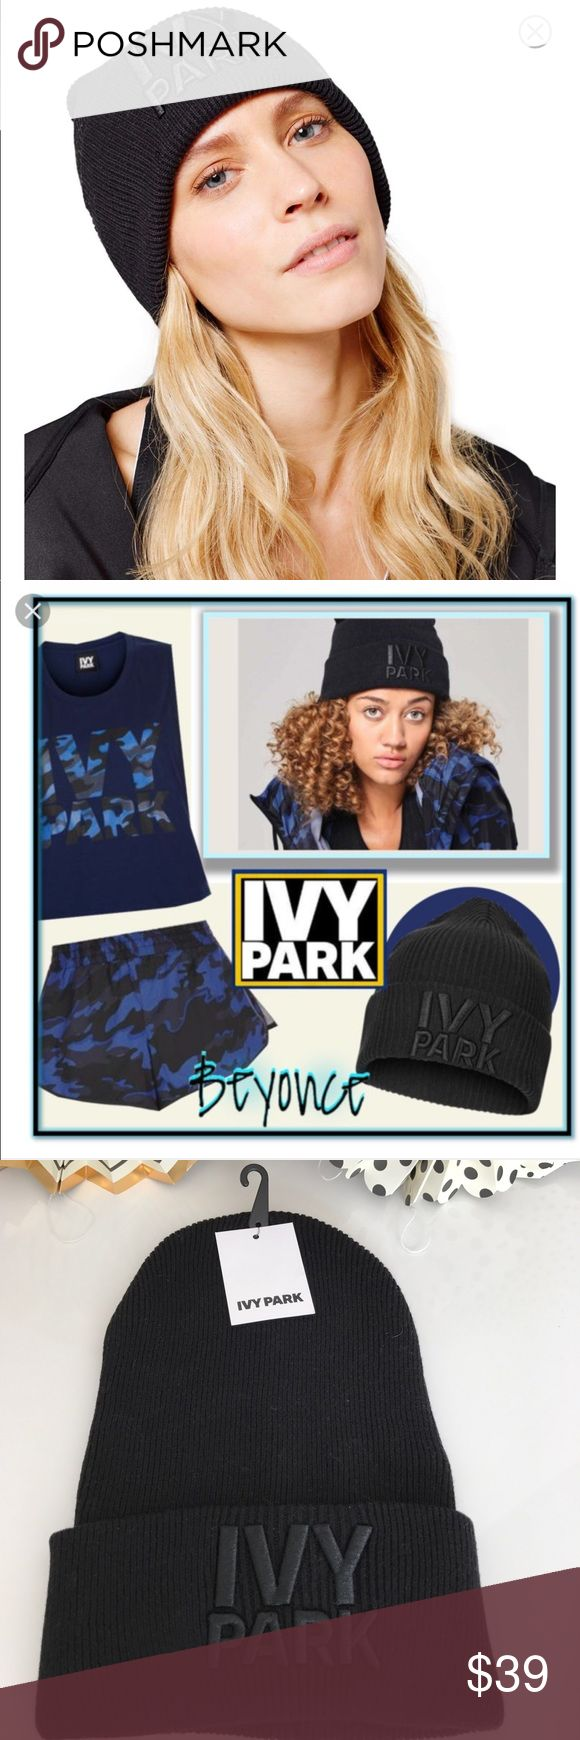 NWT Ivy Park Beanie Beyoncé Ribbed Thermal Hat ☃️ DETAILS & CARE A Black rib-knit beanie packs minimalist, everyday sports-cool style with a wide turn-back hem and large embroidered logo. 100% cotton. Hand wash cold, dry flat. By IVY PARK; imported. Brand new with Tags ivy park Accessories Hats